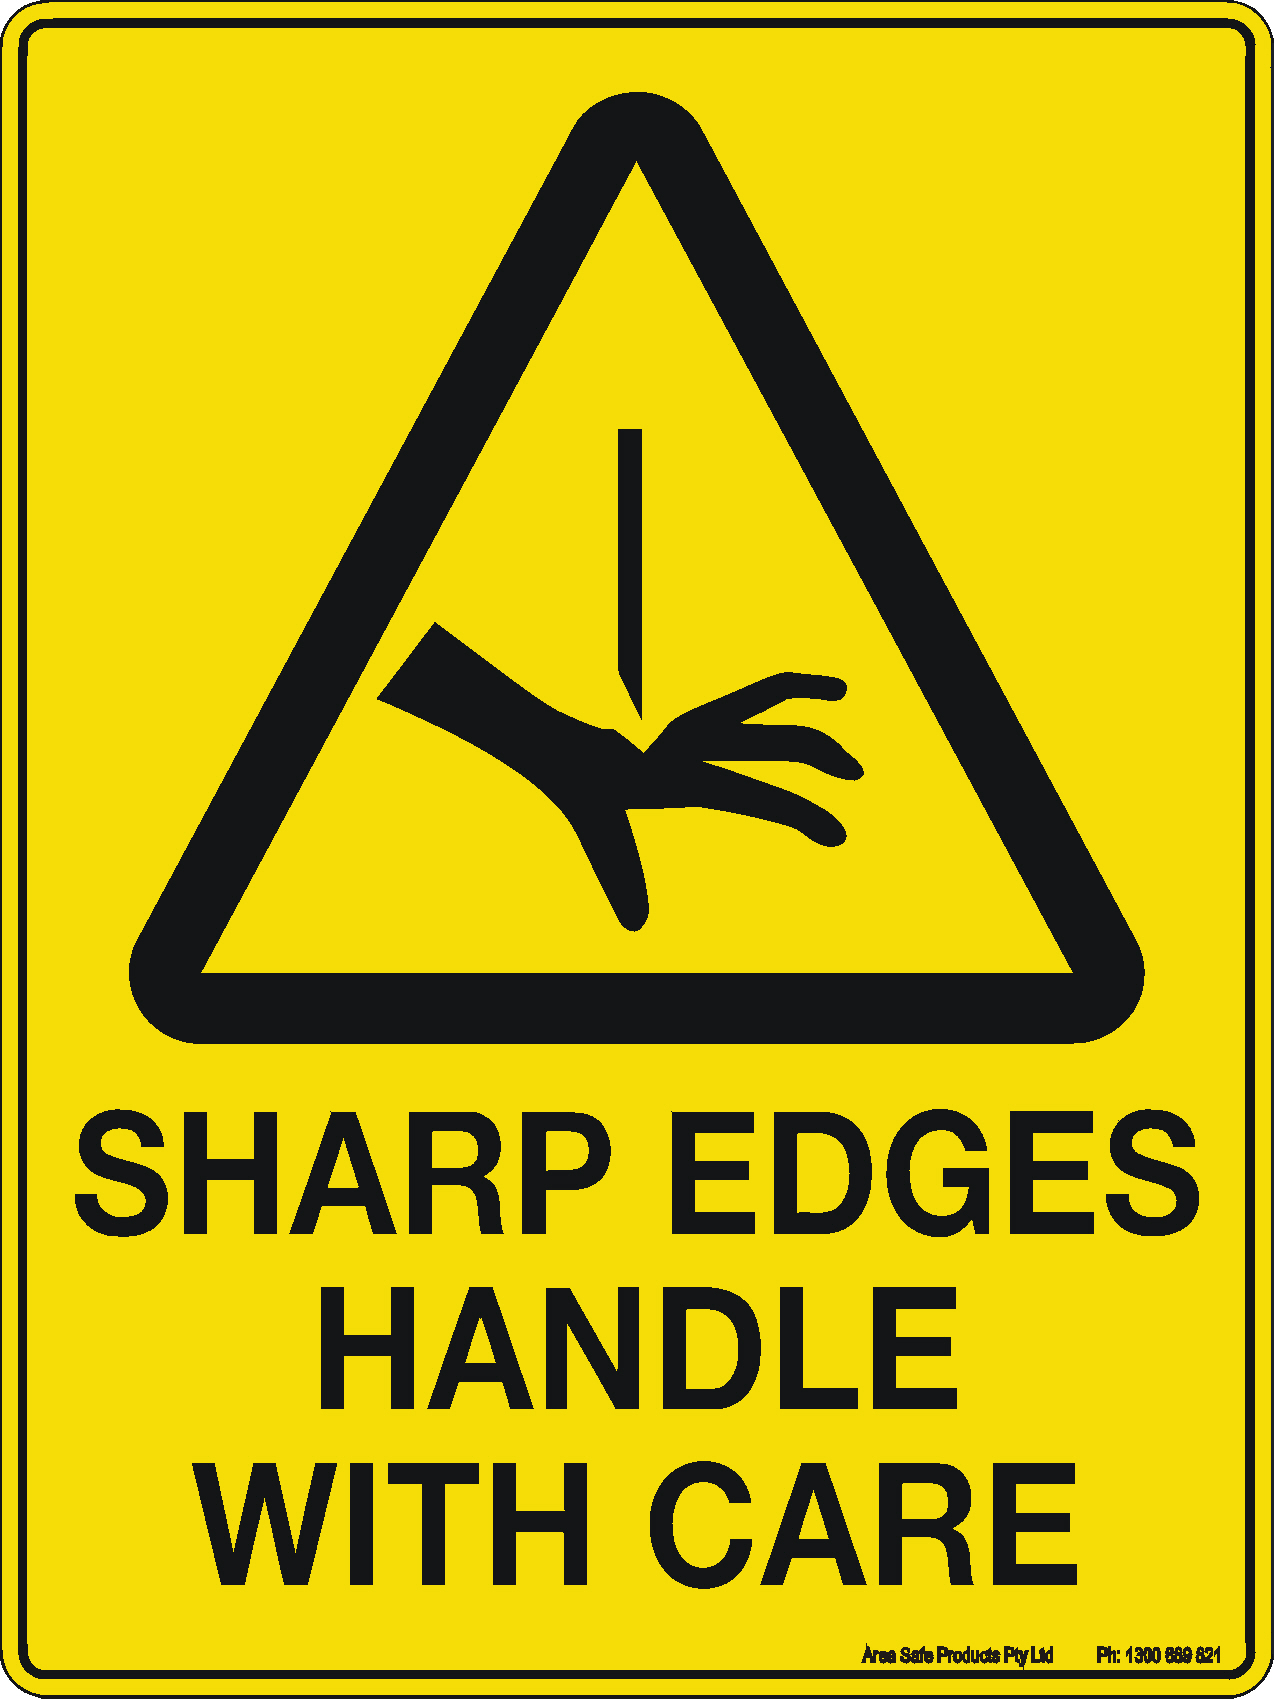 caution sign sharp edges handle with care